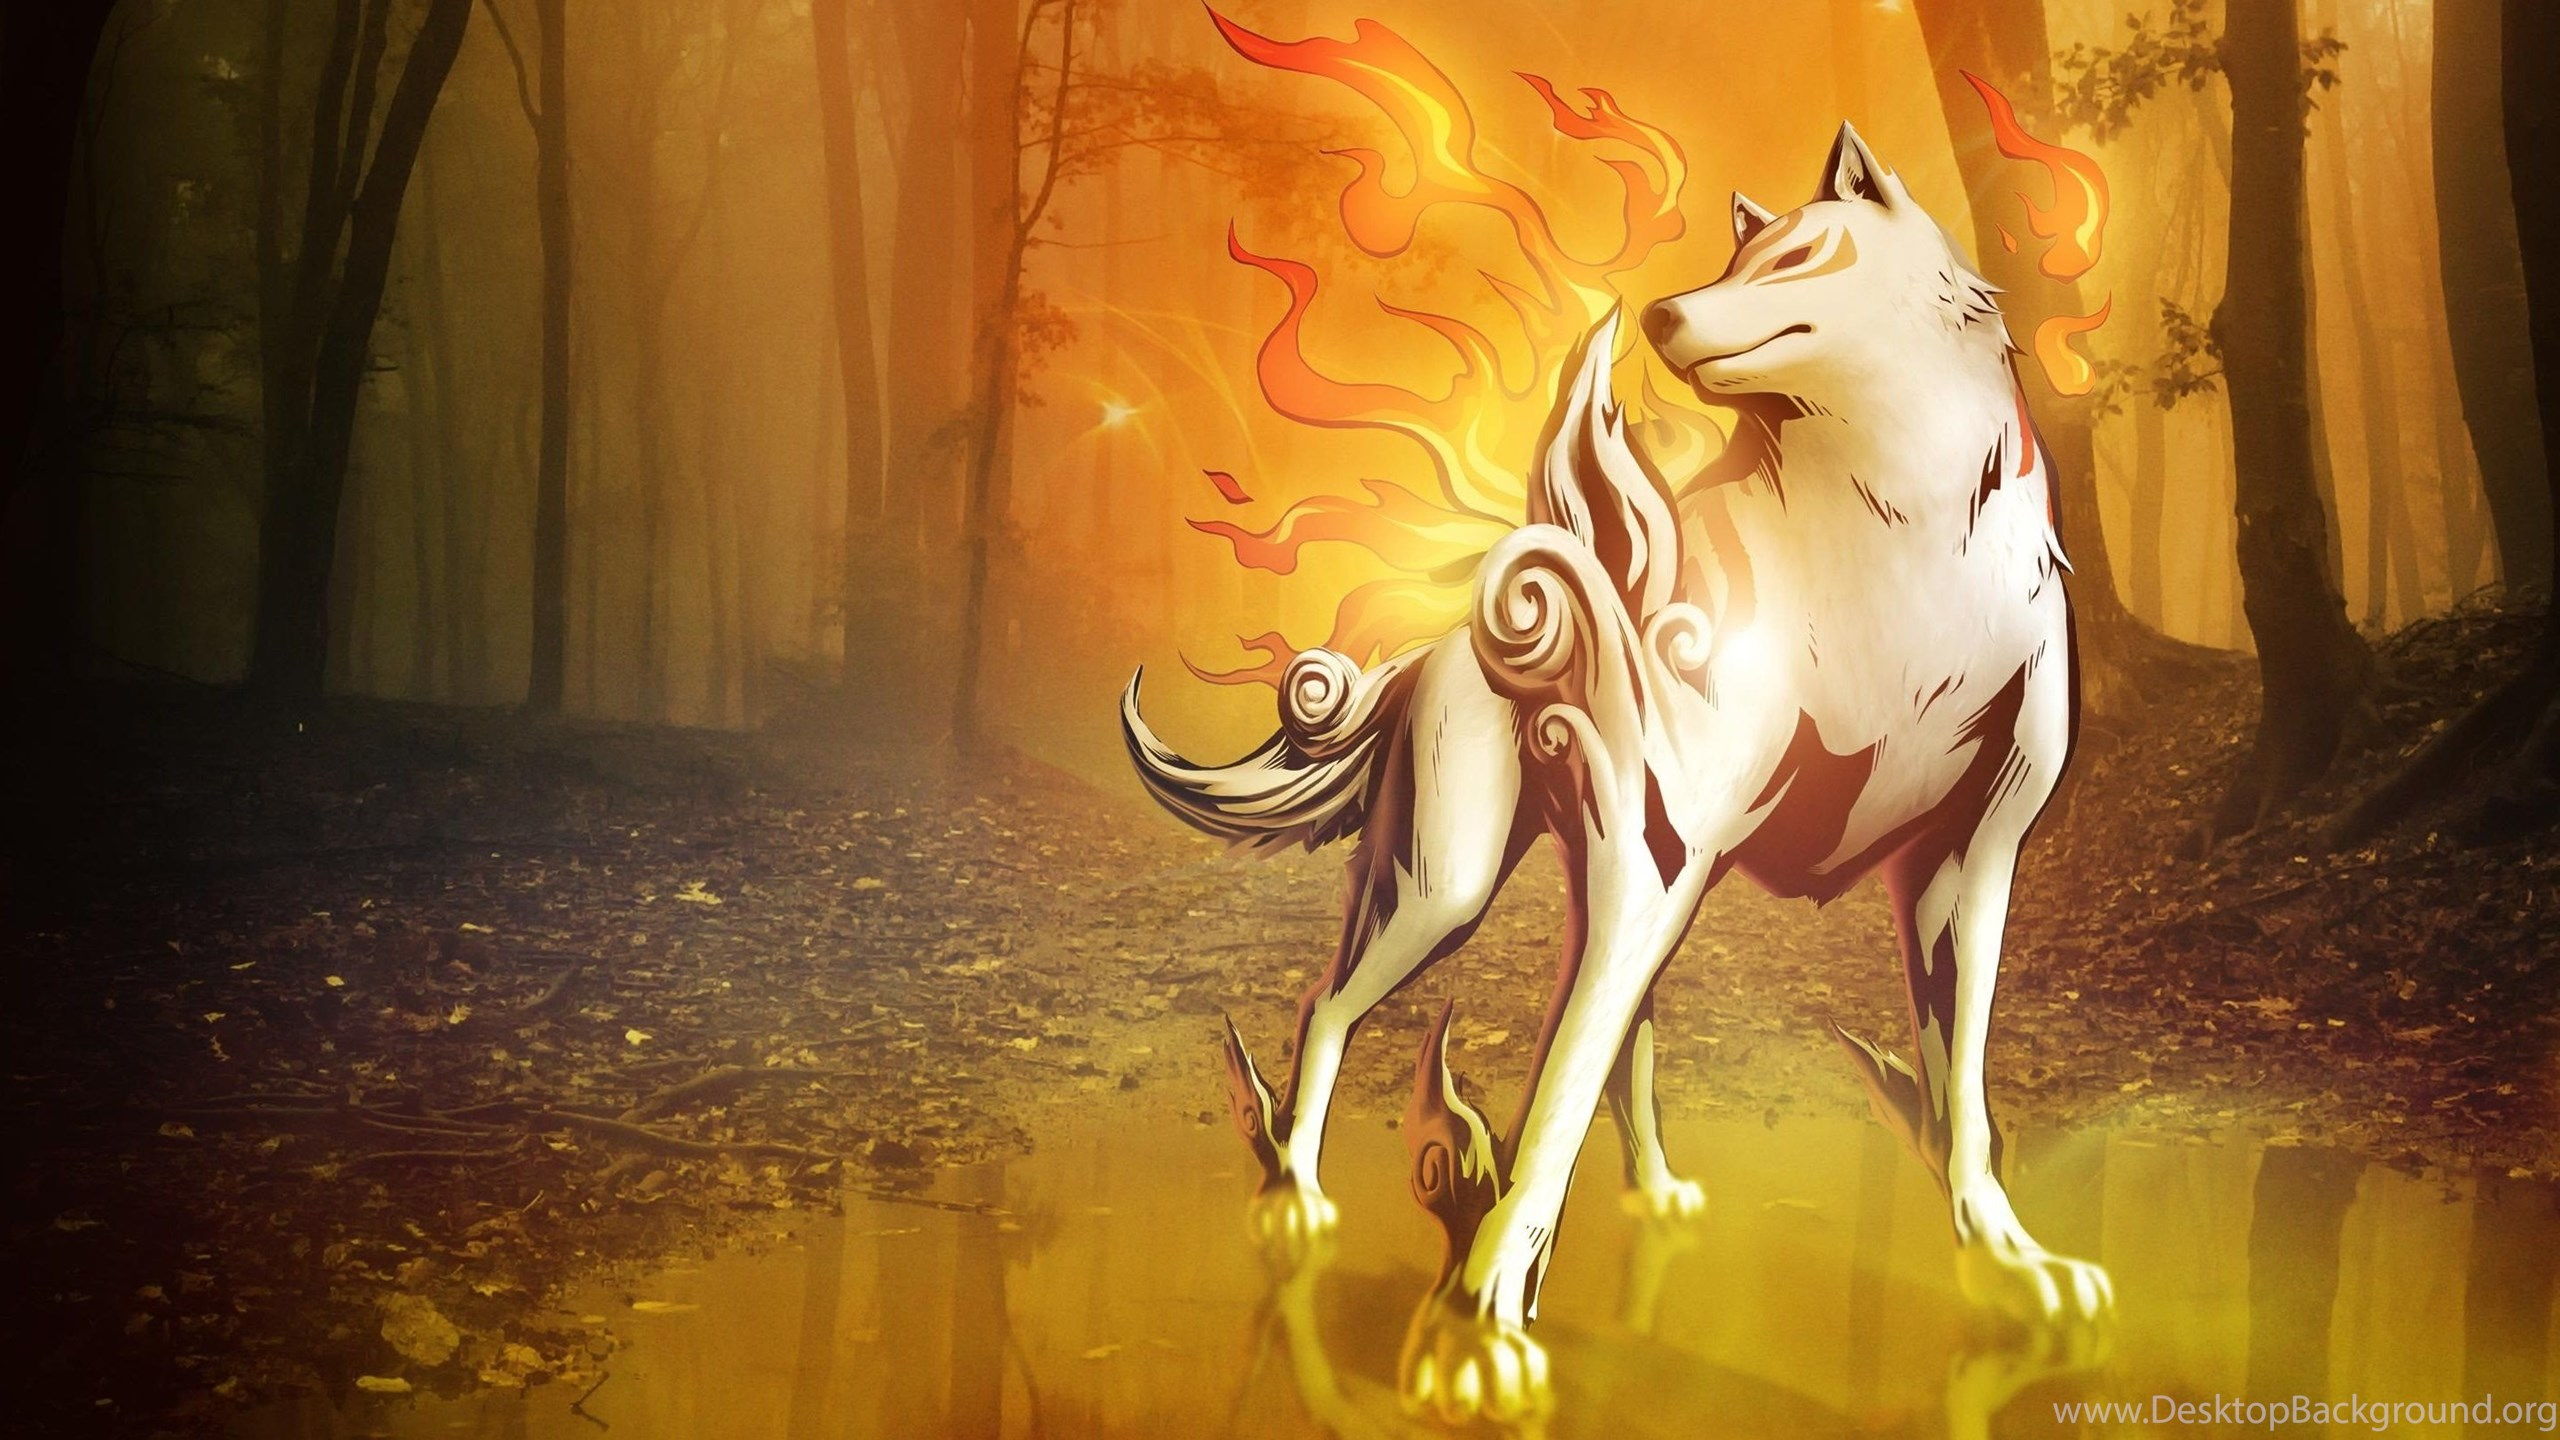 Cute Holo Wallpaper Ookami To Koushinryou Spice And Wolf Wallpapers Desktop